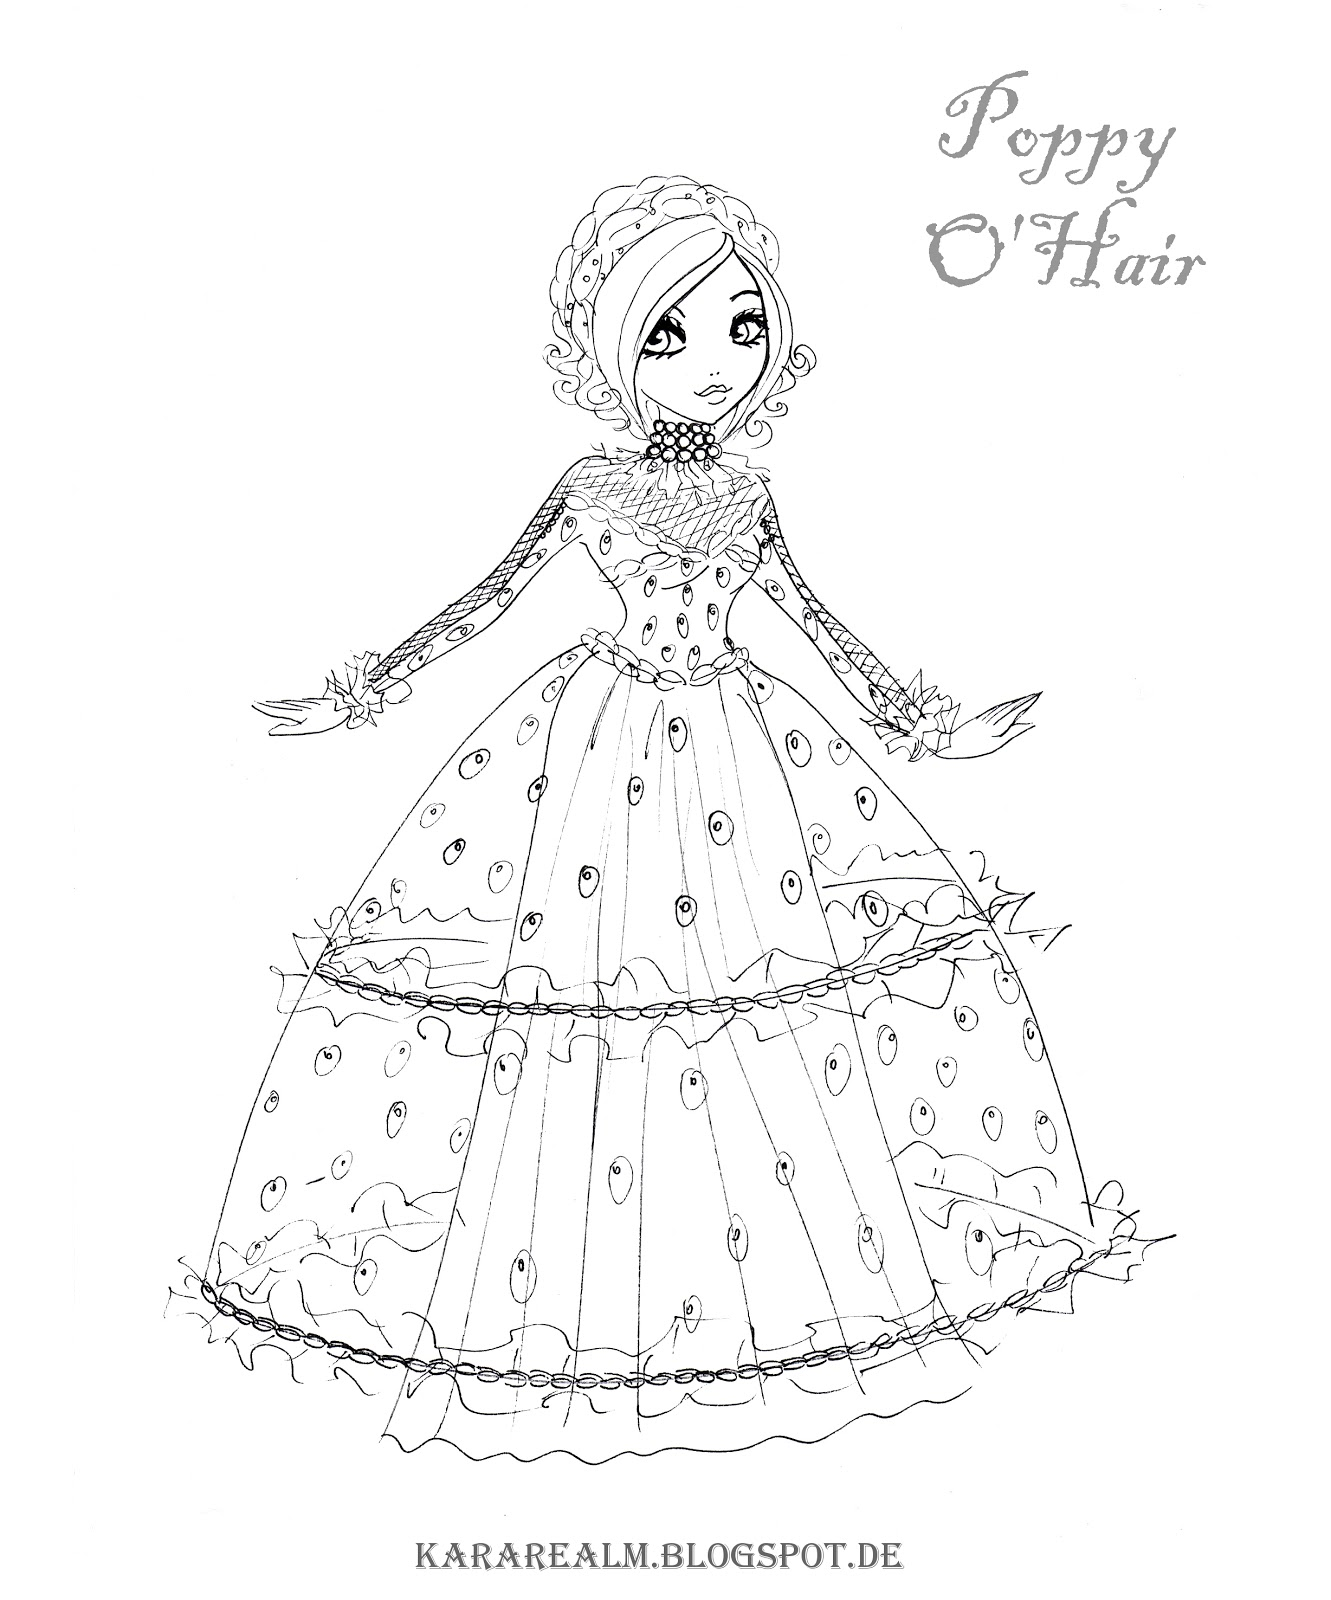 1331x1600 New Kara Realm Ever After High Coloring Pages